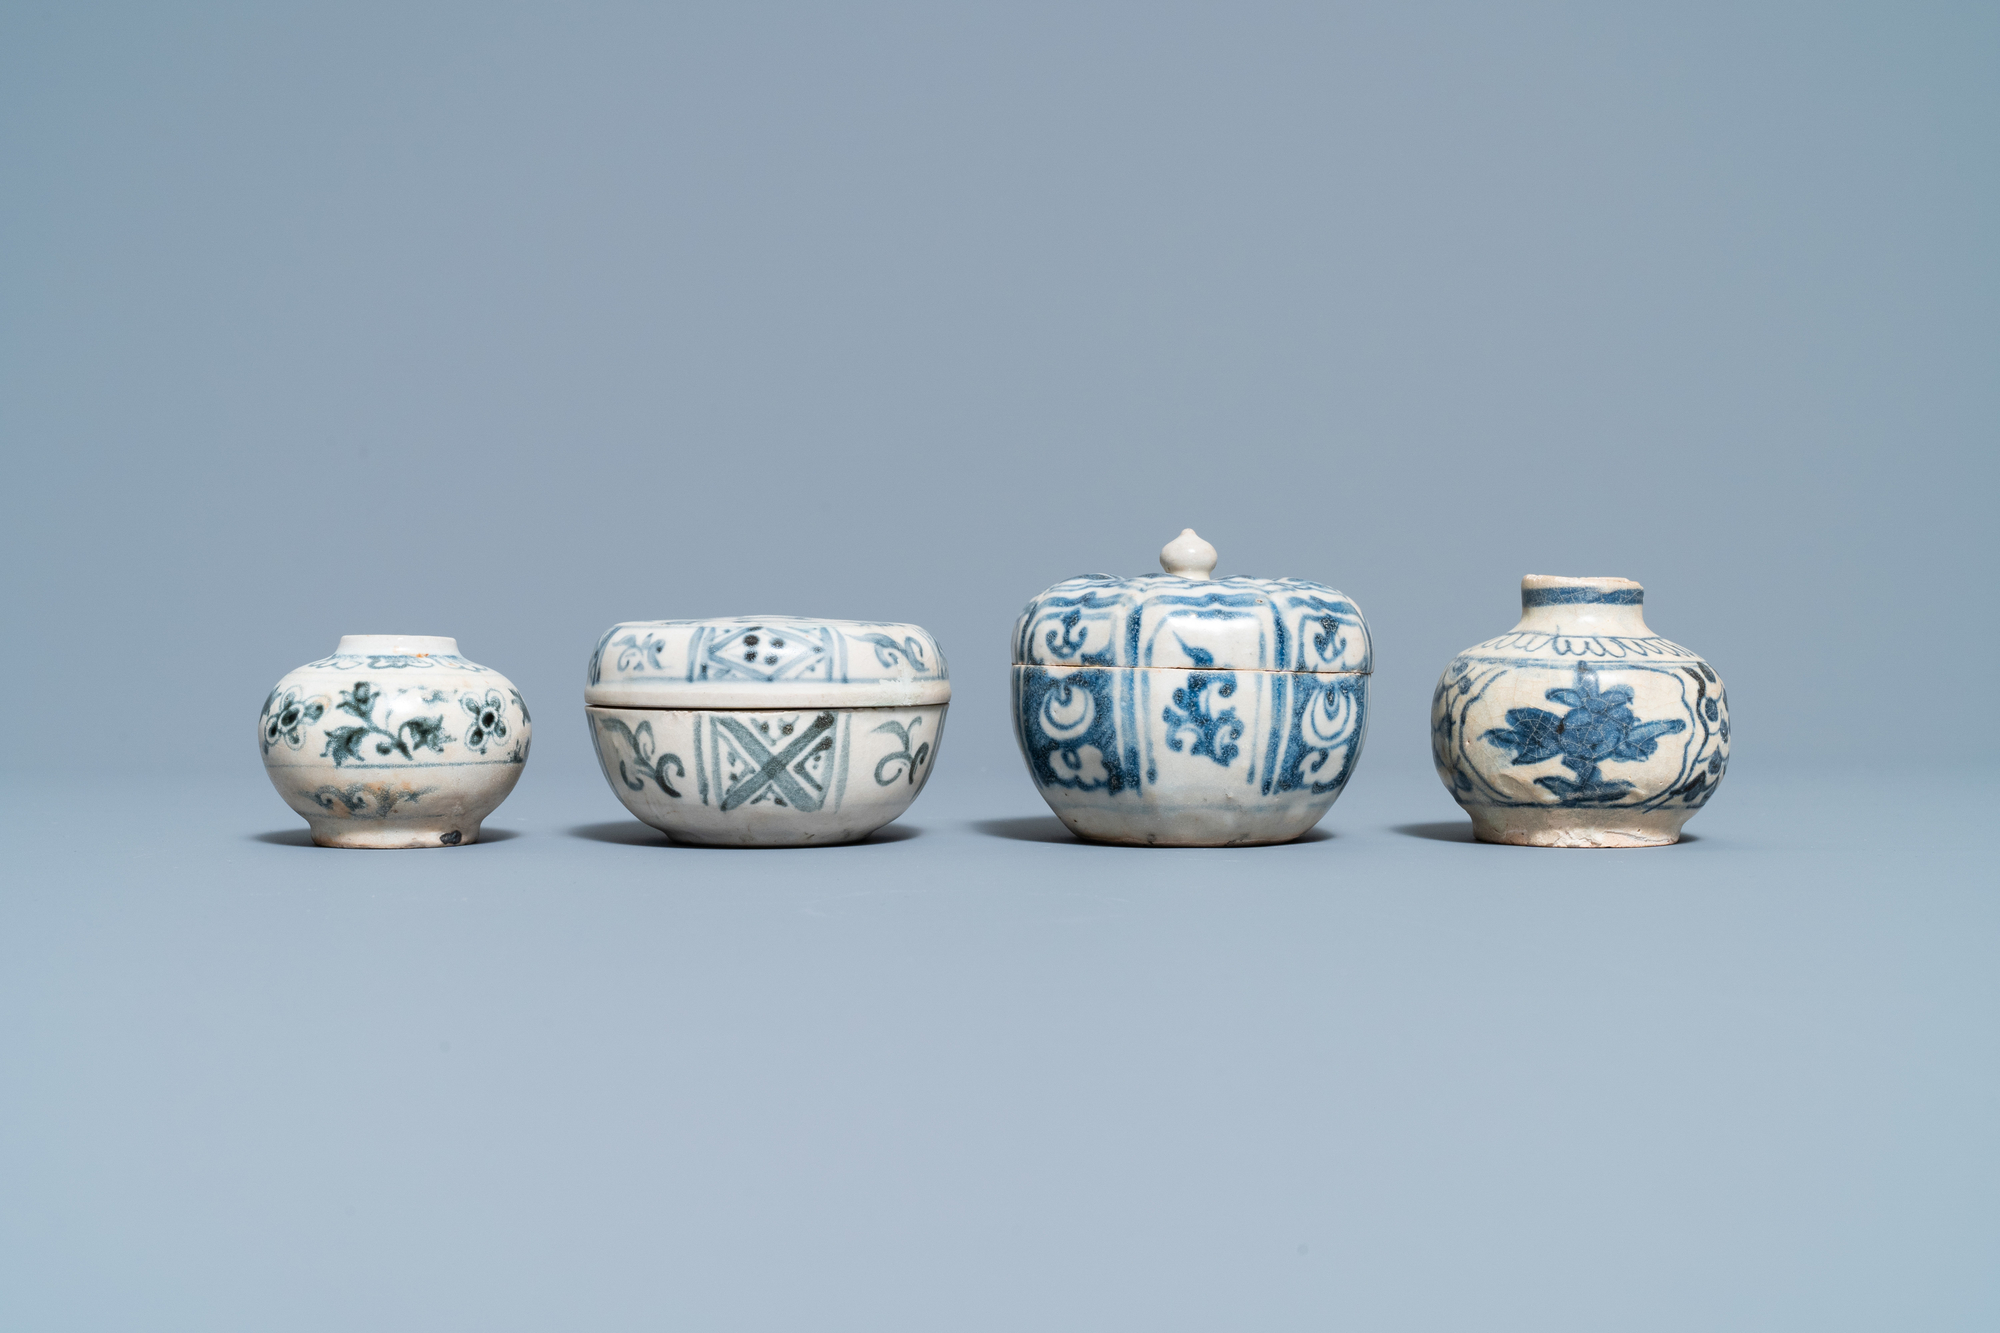 Four blue and white Vietnamese or Annamese ceramics and a Chinese jarlet, 15/16th C. - Image 7 of 12